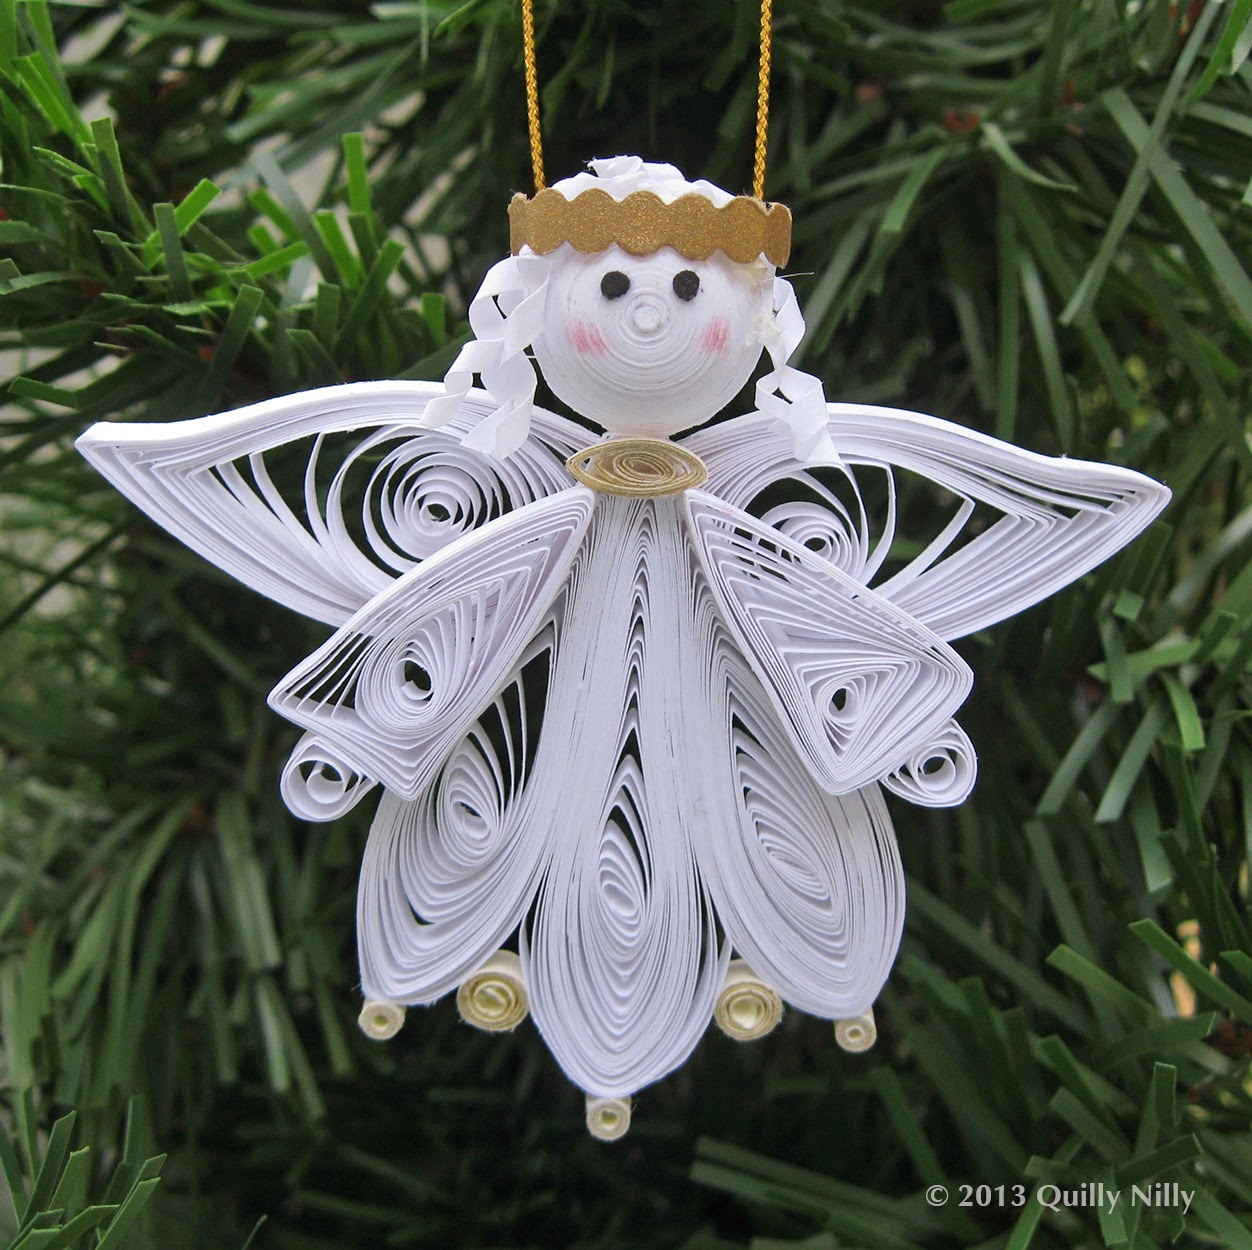 #486131 Quilly Nilly: NEW! Quilled Angel Ornament 6013 decoration de noel quilling 1252x1250 px @ aertt.com